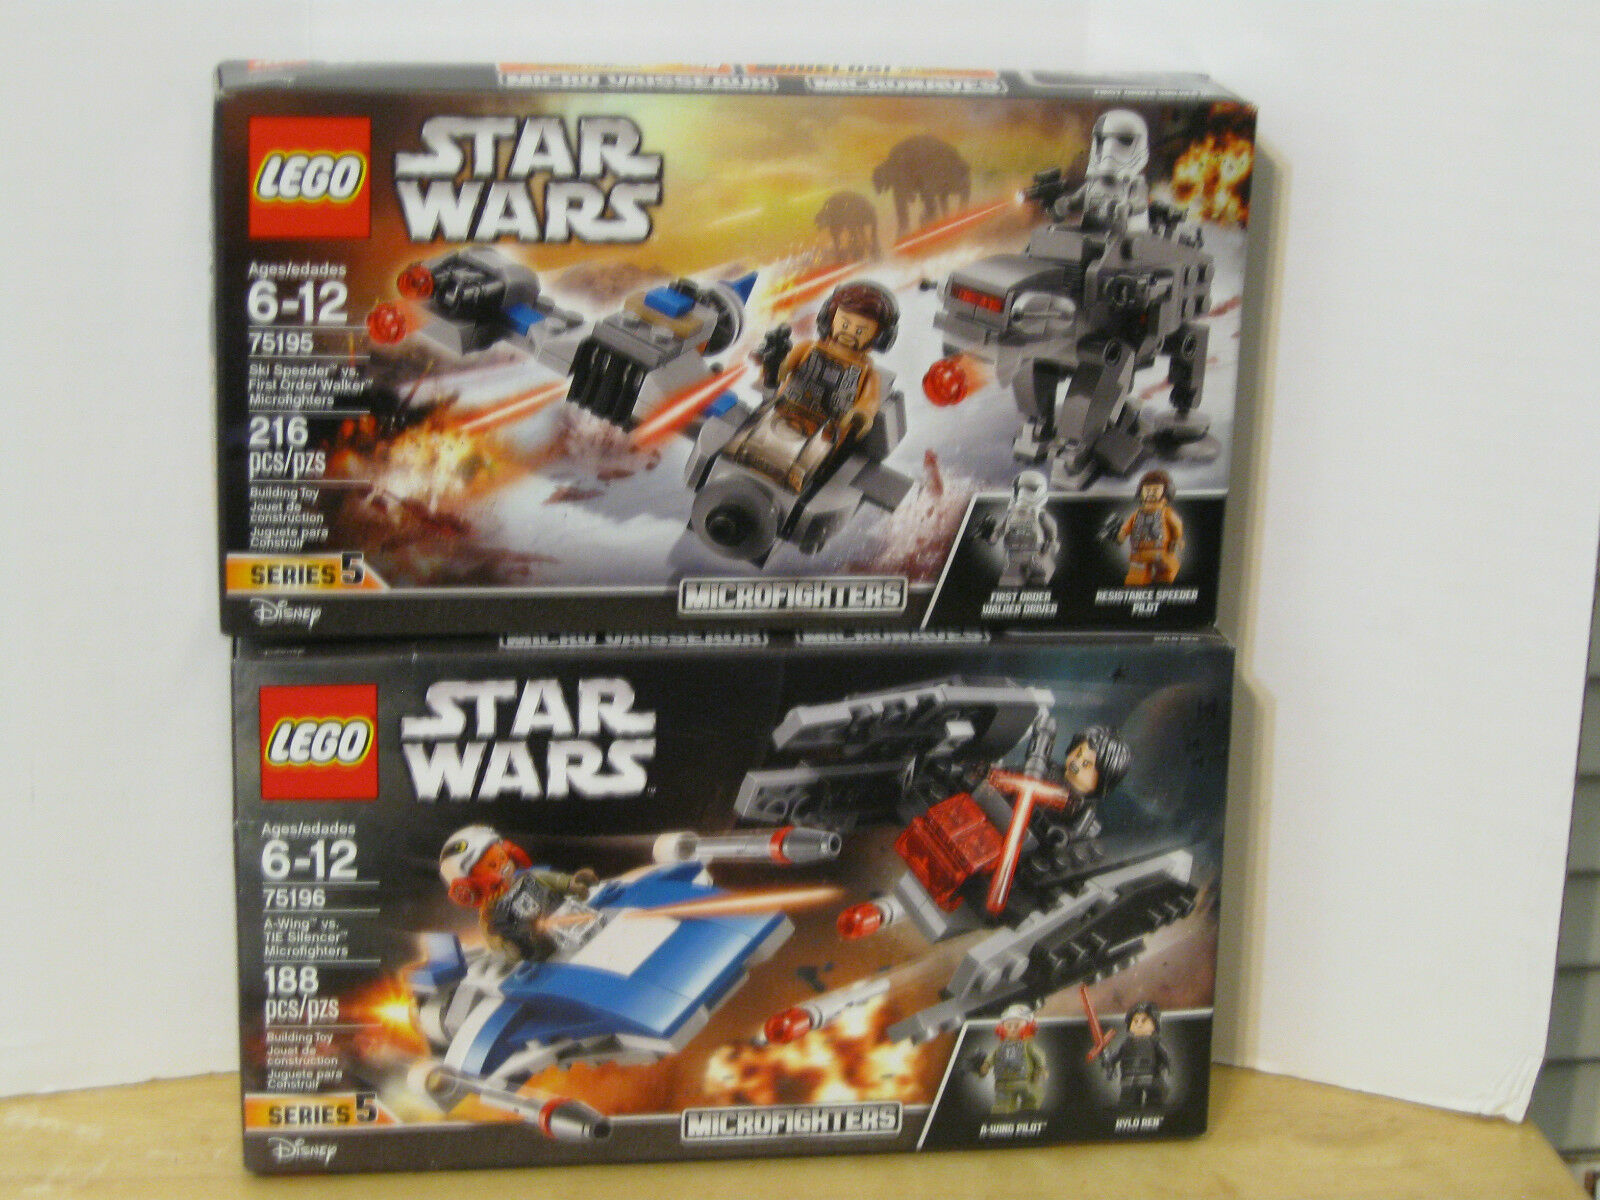 NEW Lego Star Wars The Last Jedi Microfighter Set 75195 75196 IN HAND NOW